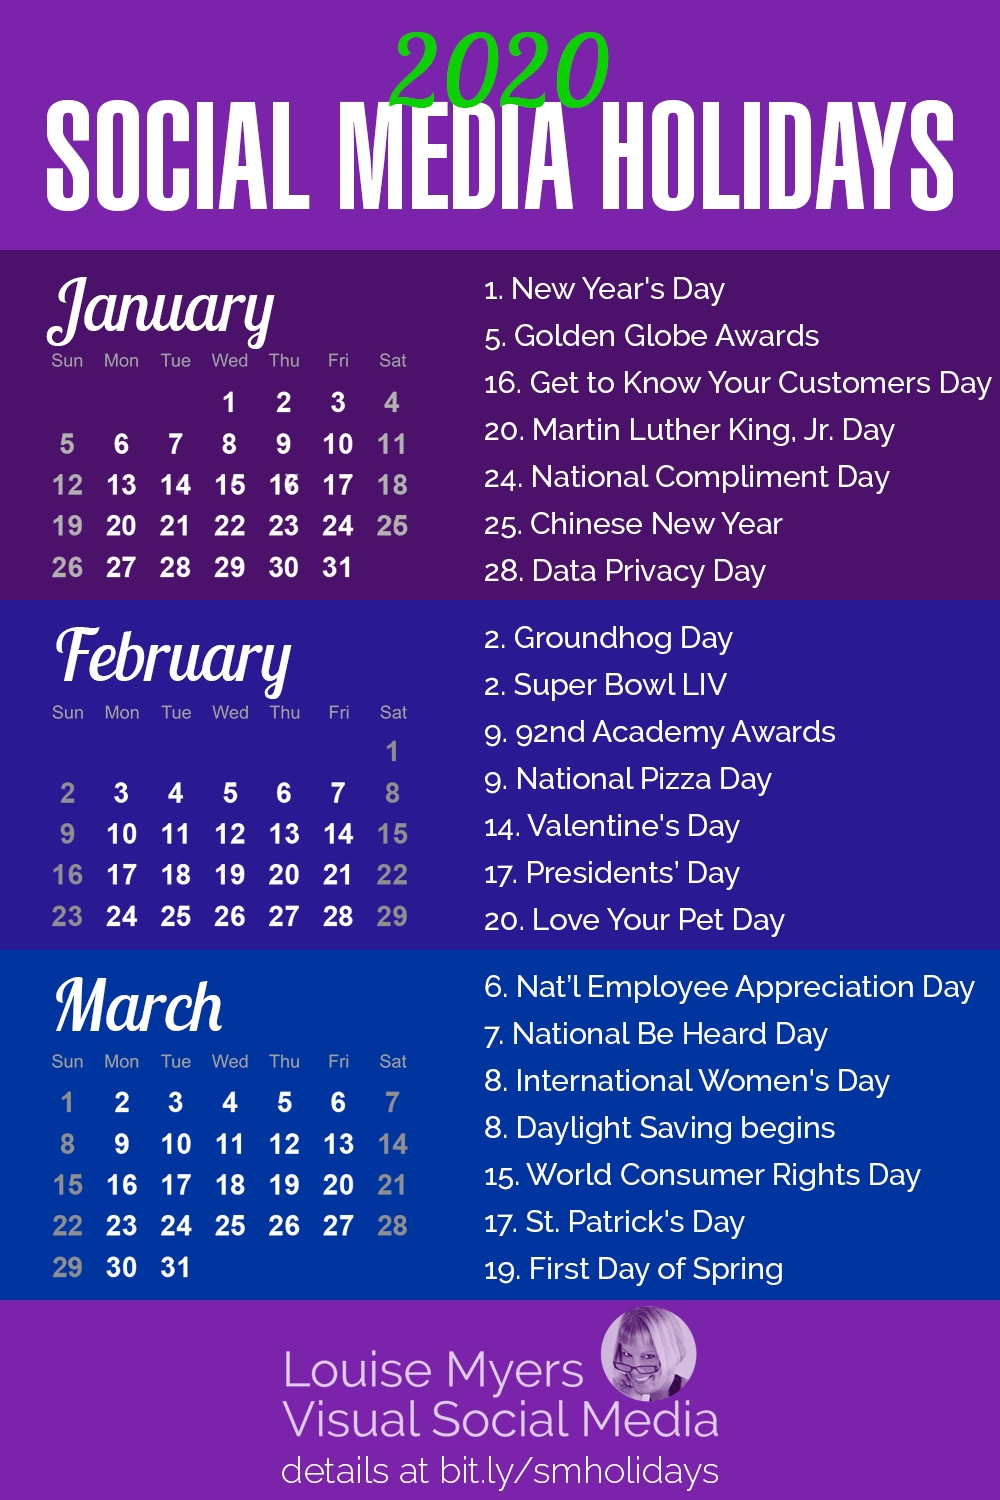 84 Social Media Holidays You Need In 2020: Indispensable! with regard to Special Days By Month In 2020